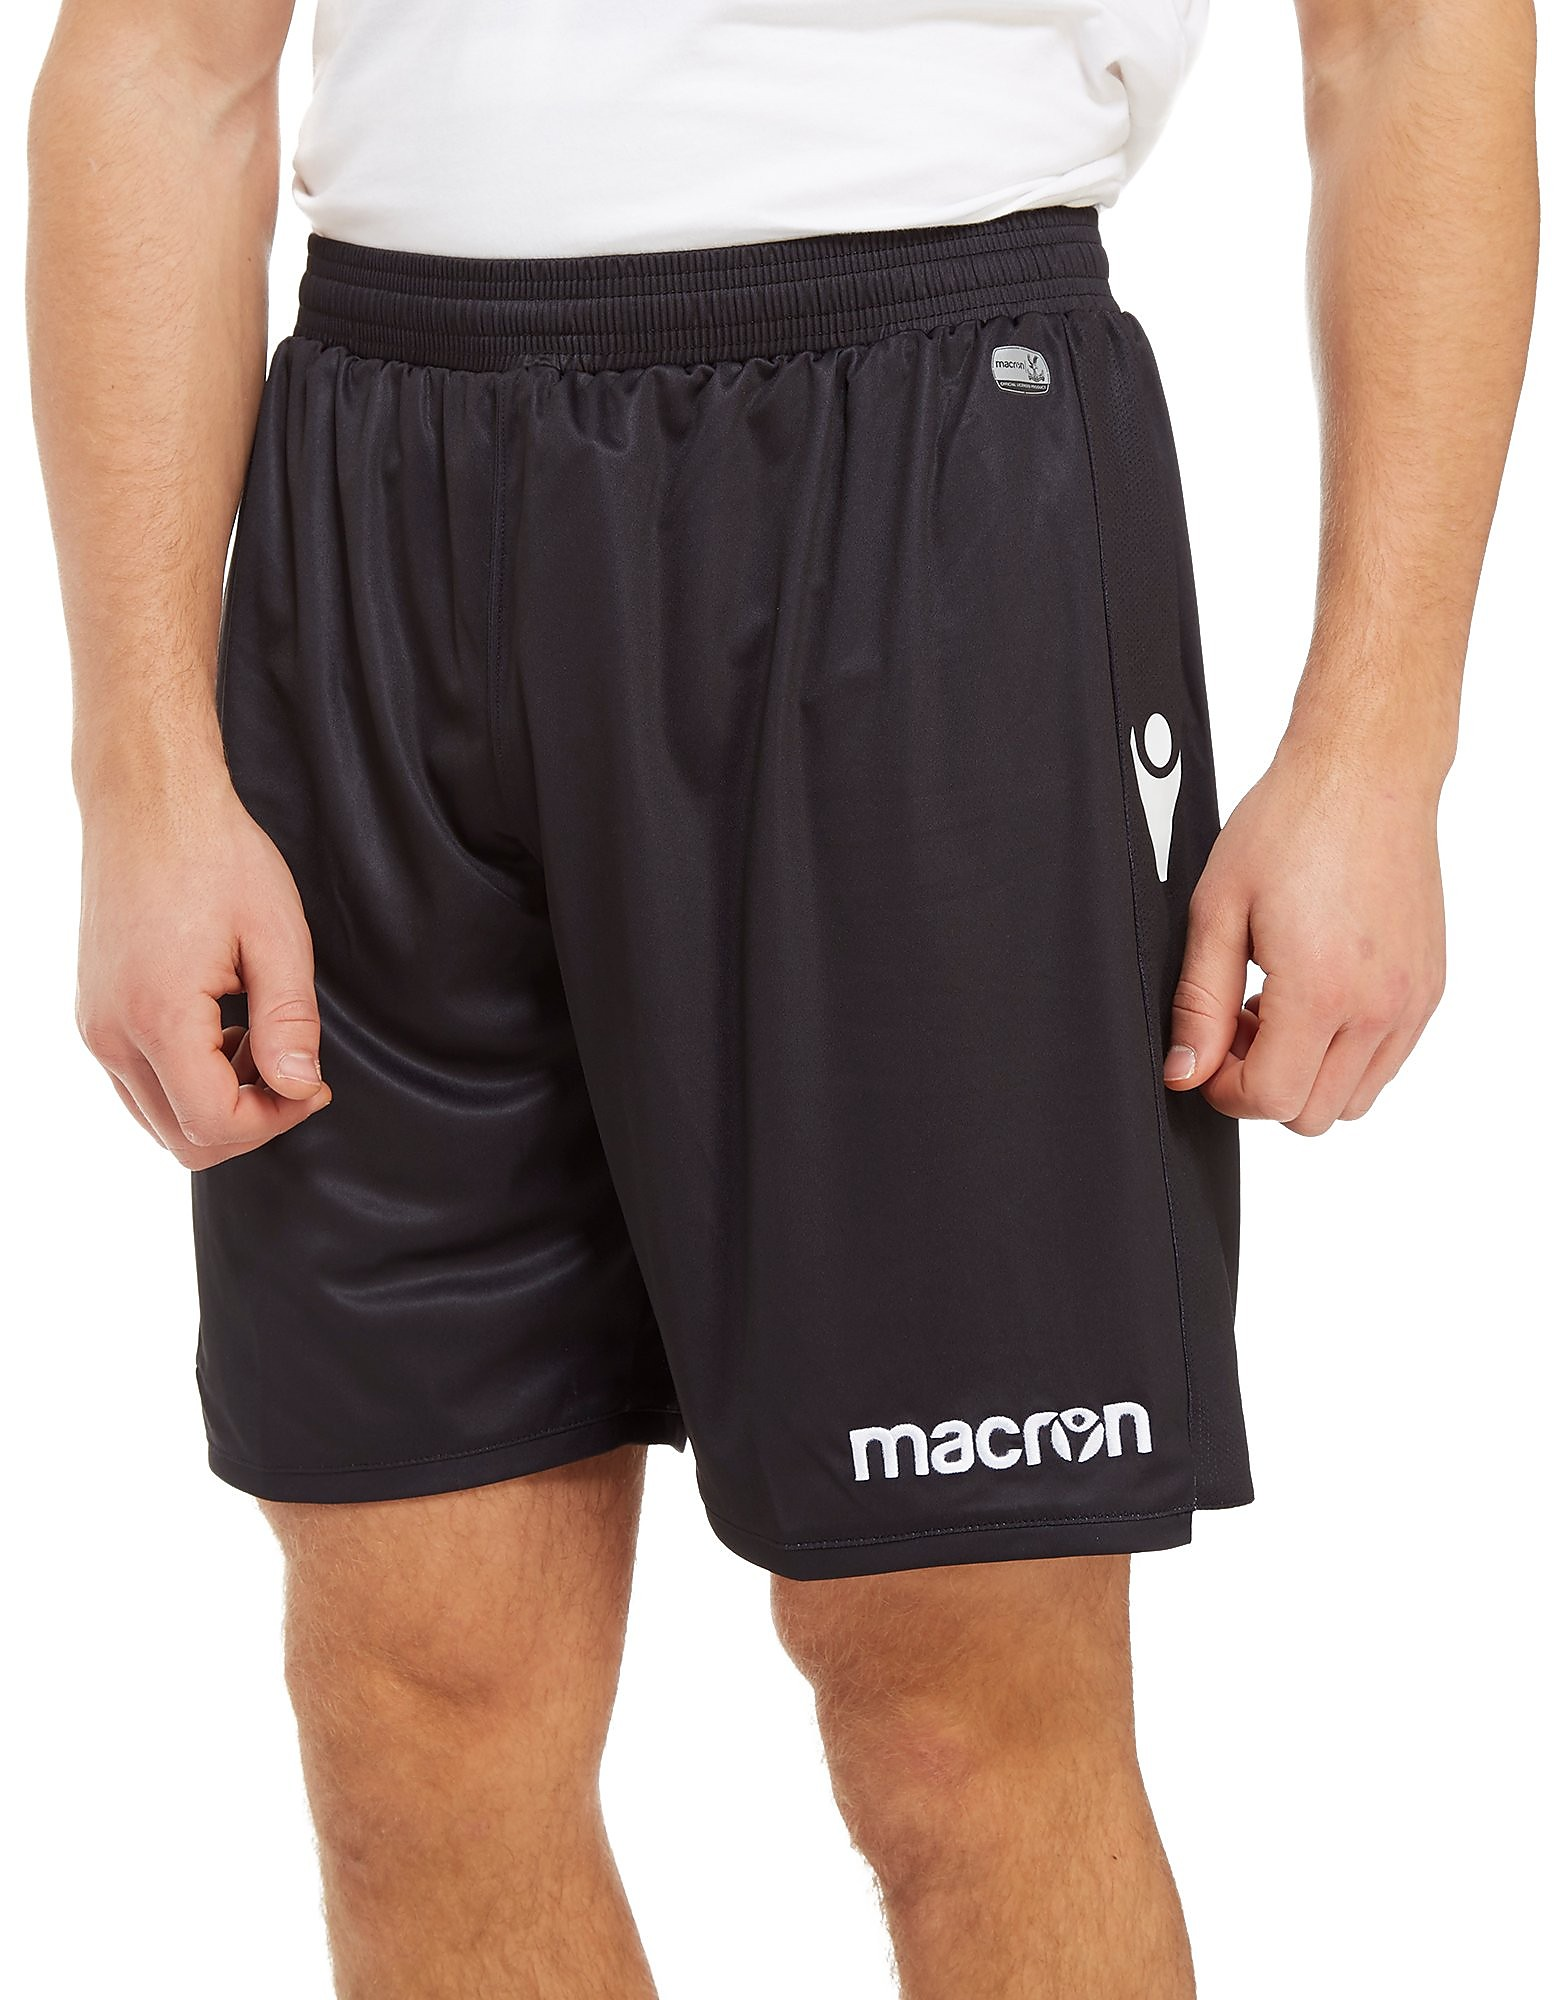 Macron Cystal Palace FC 2017/18 Away Shorts